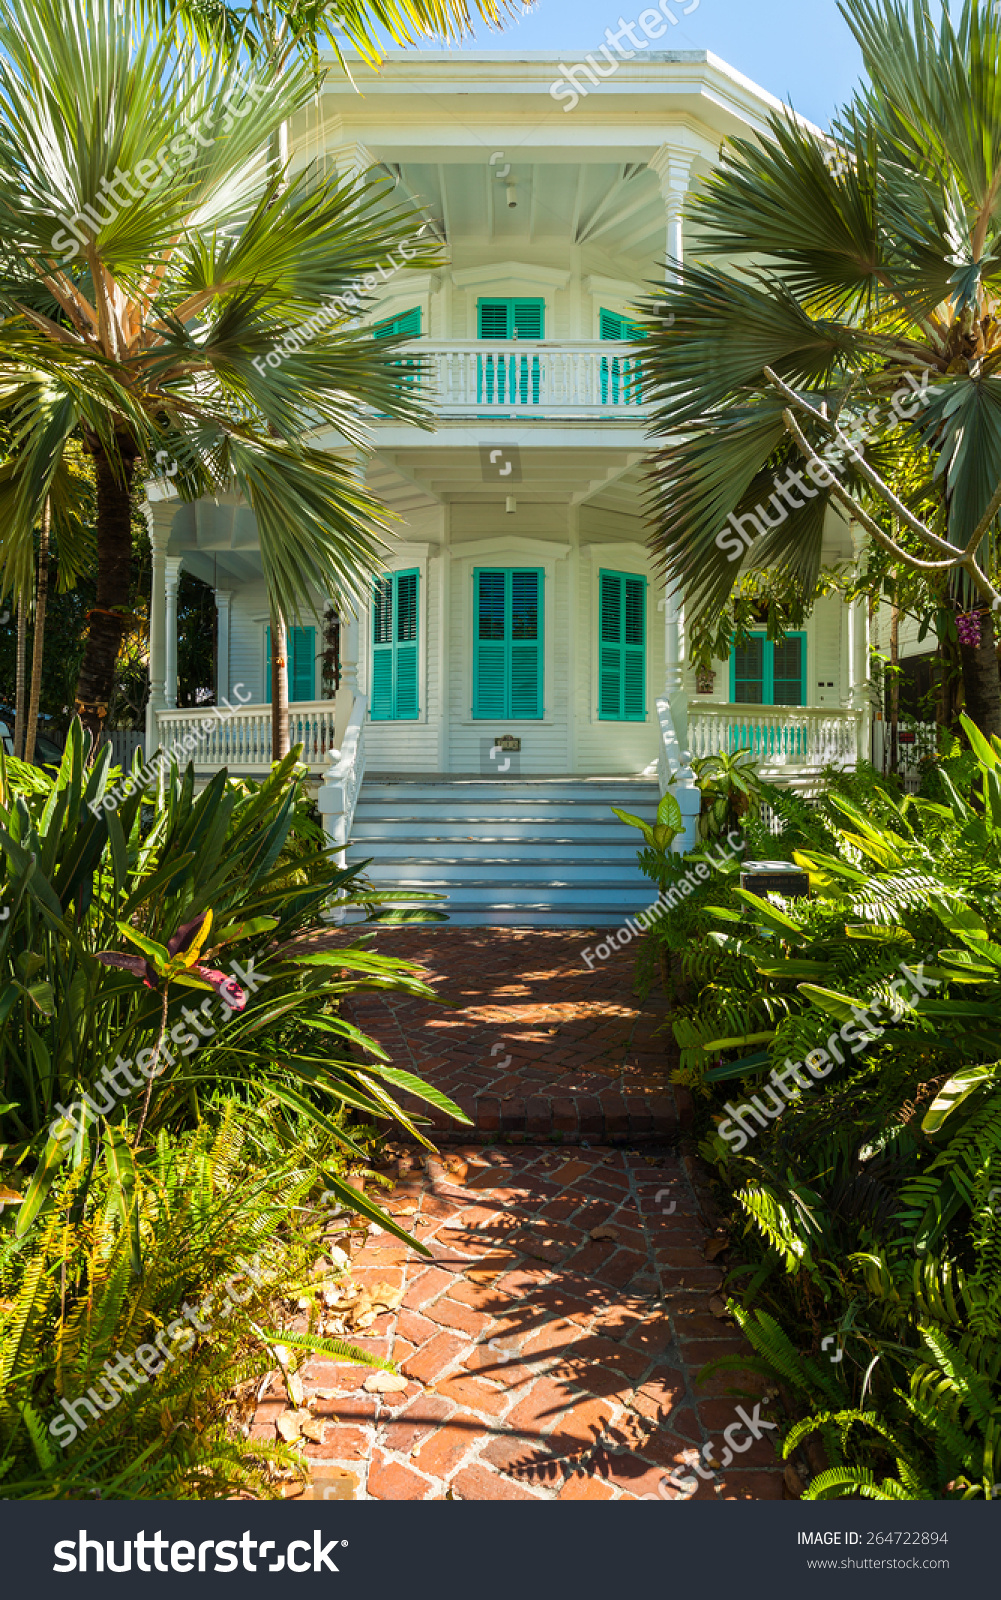 Key west florida usa march 3 stock photo 264722894 for Wood frame house in florida